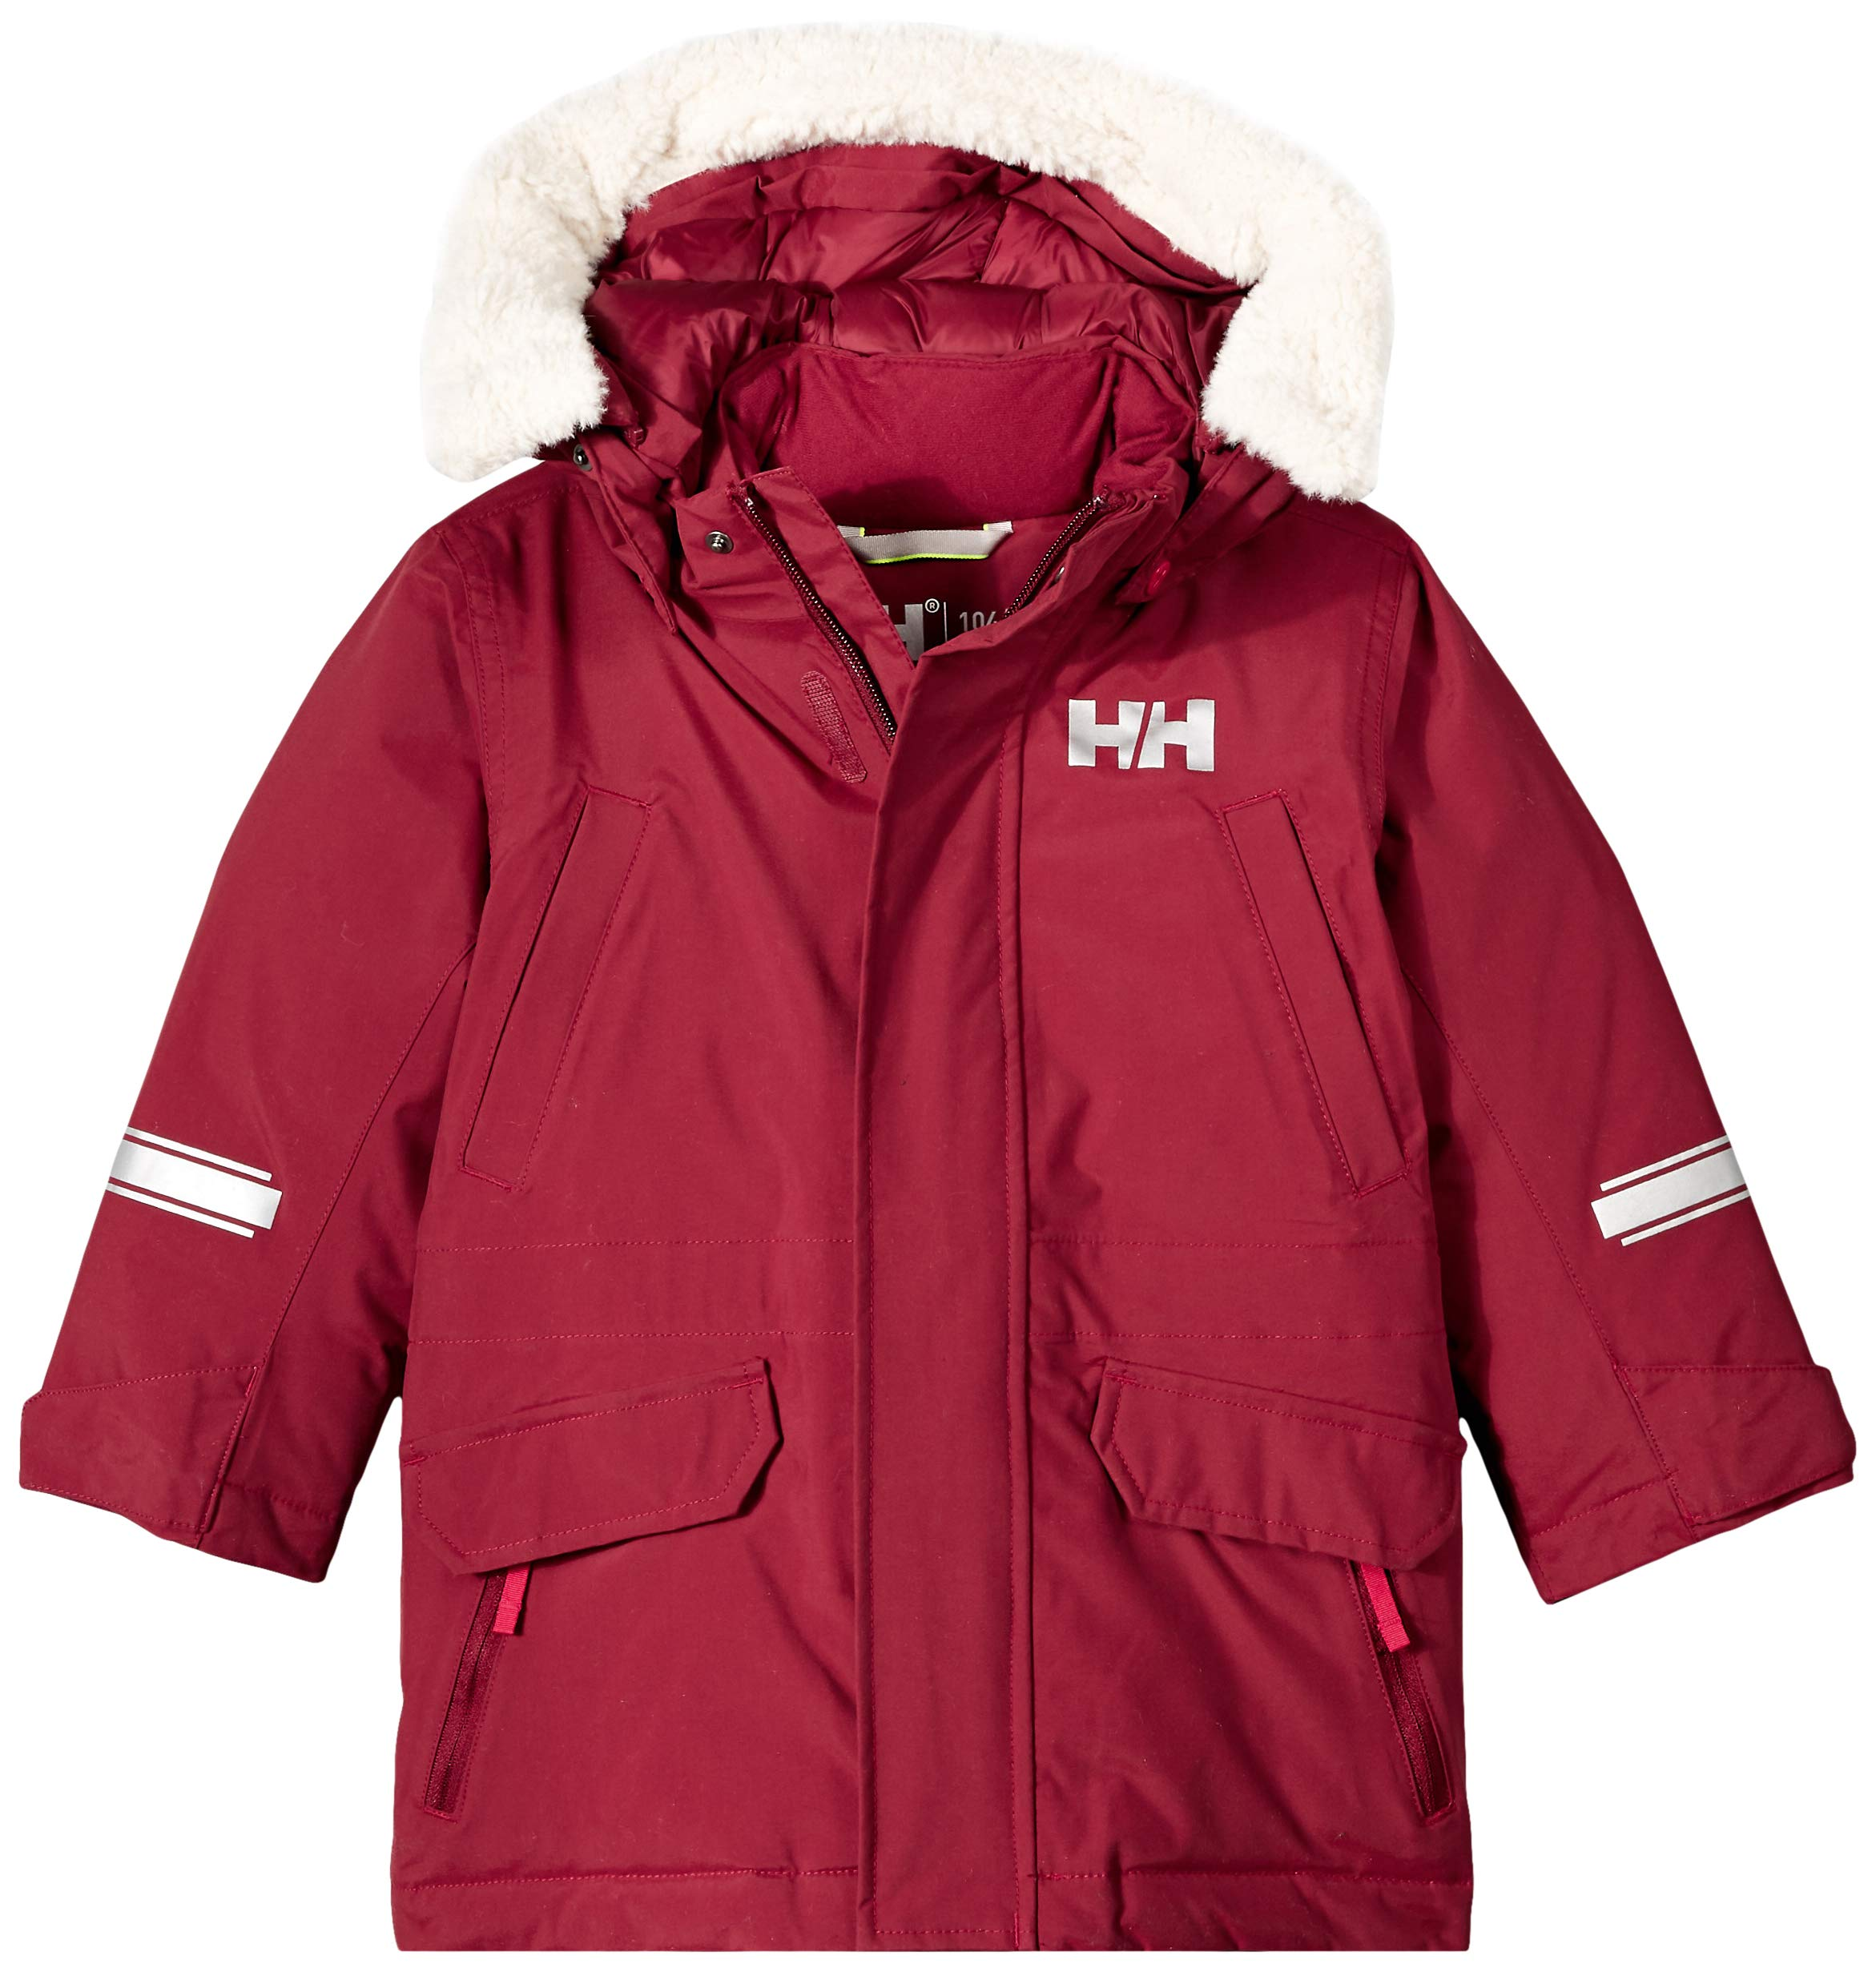 Helly Hansen K Isfjord Down Parka Jacket, Cabernet, Size 4 by Helly Hansen (Image #1)